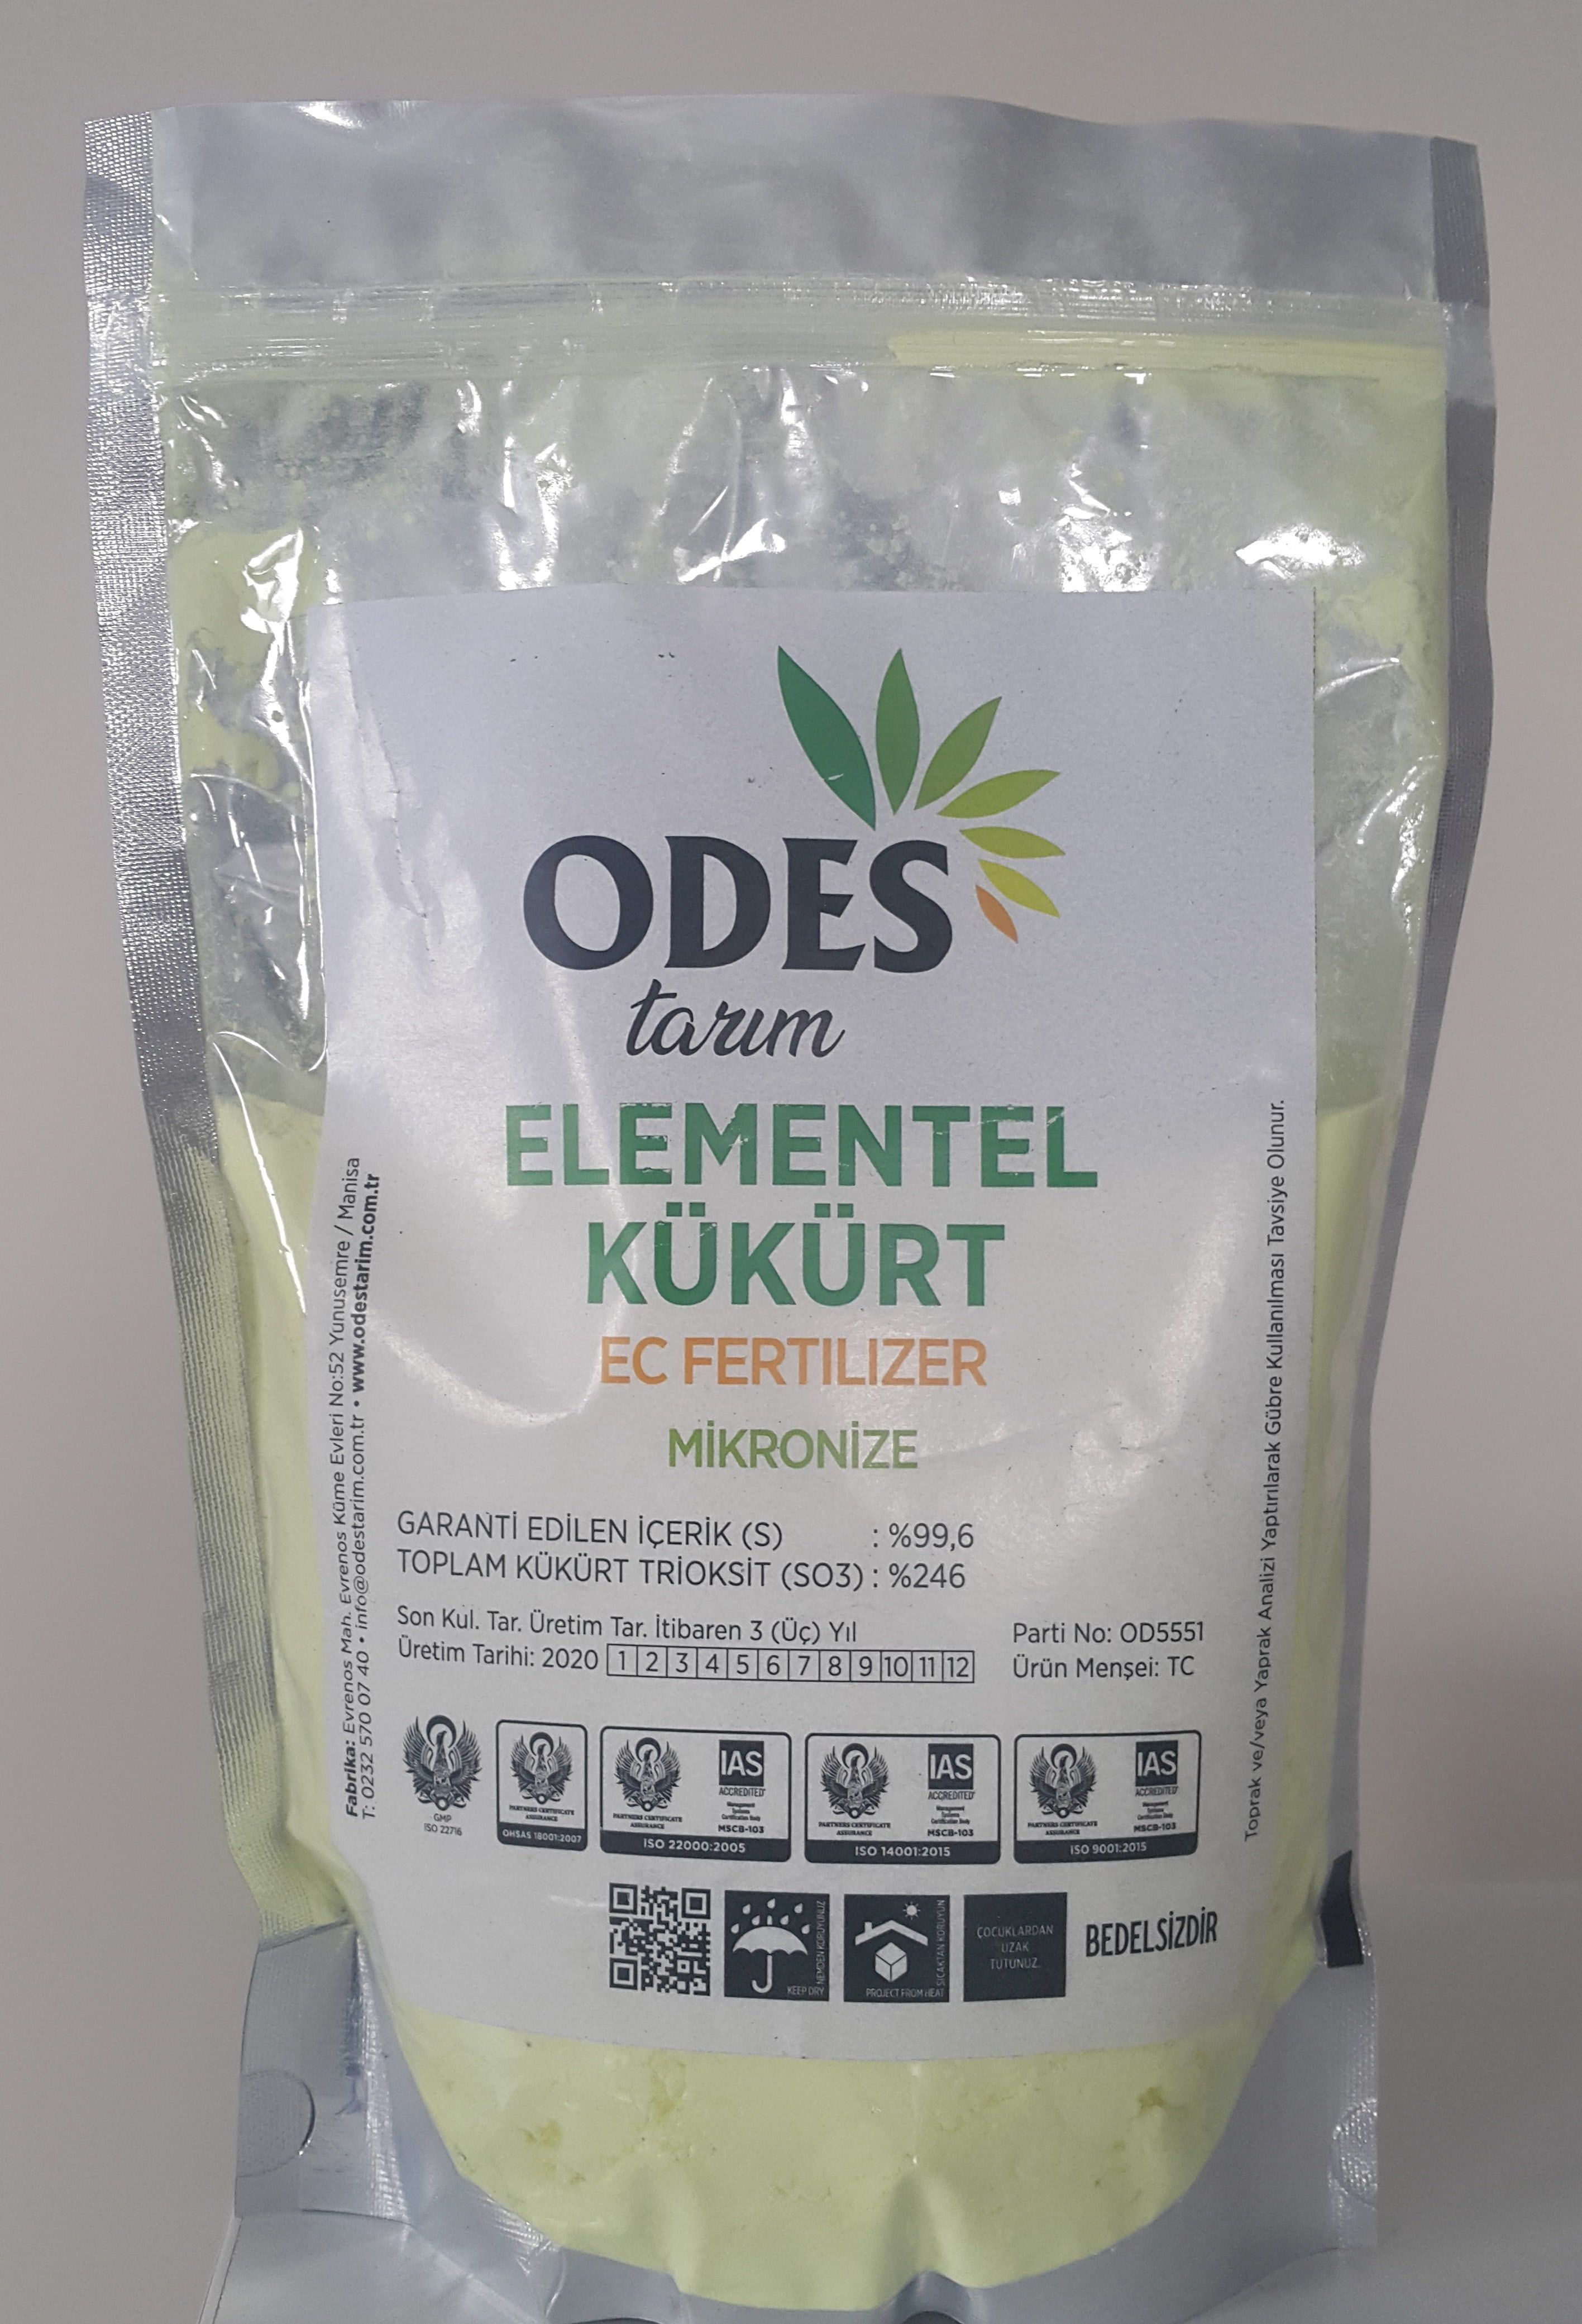 Odes micronized sulfur